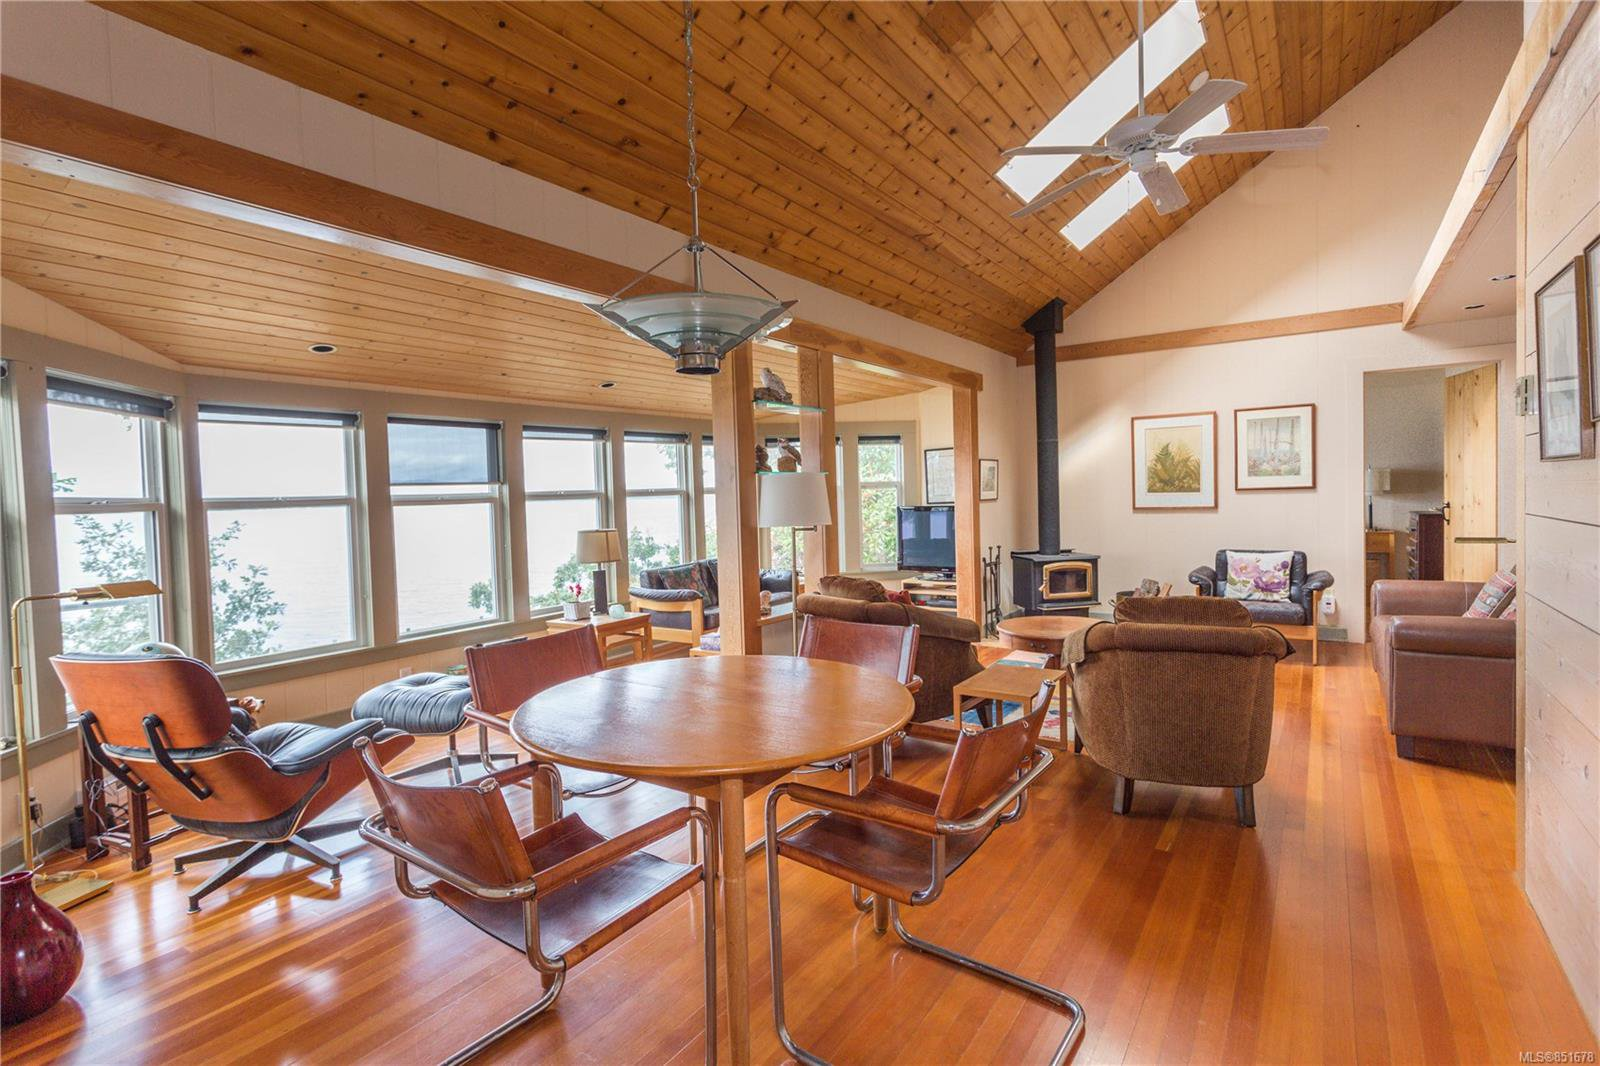 Photo 9: Photos: 262 Forbes Dr in : Isl Thetis Island House for sale (Islands)  : MLS®# 851678